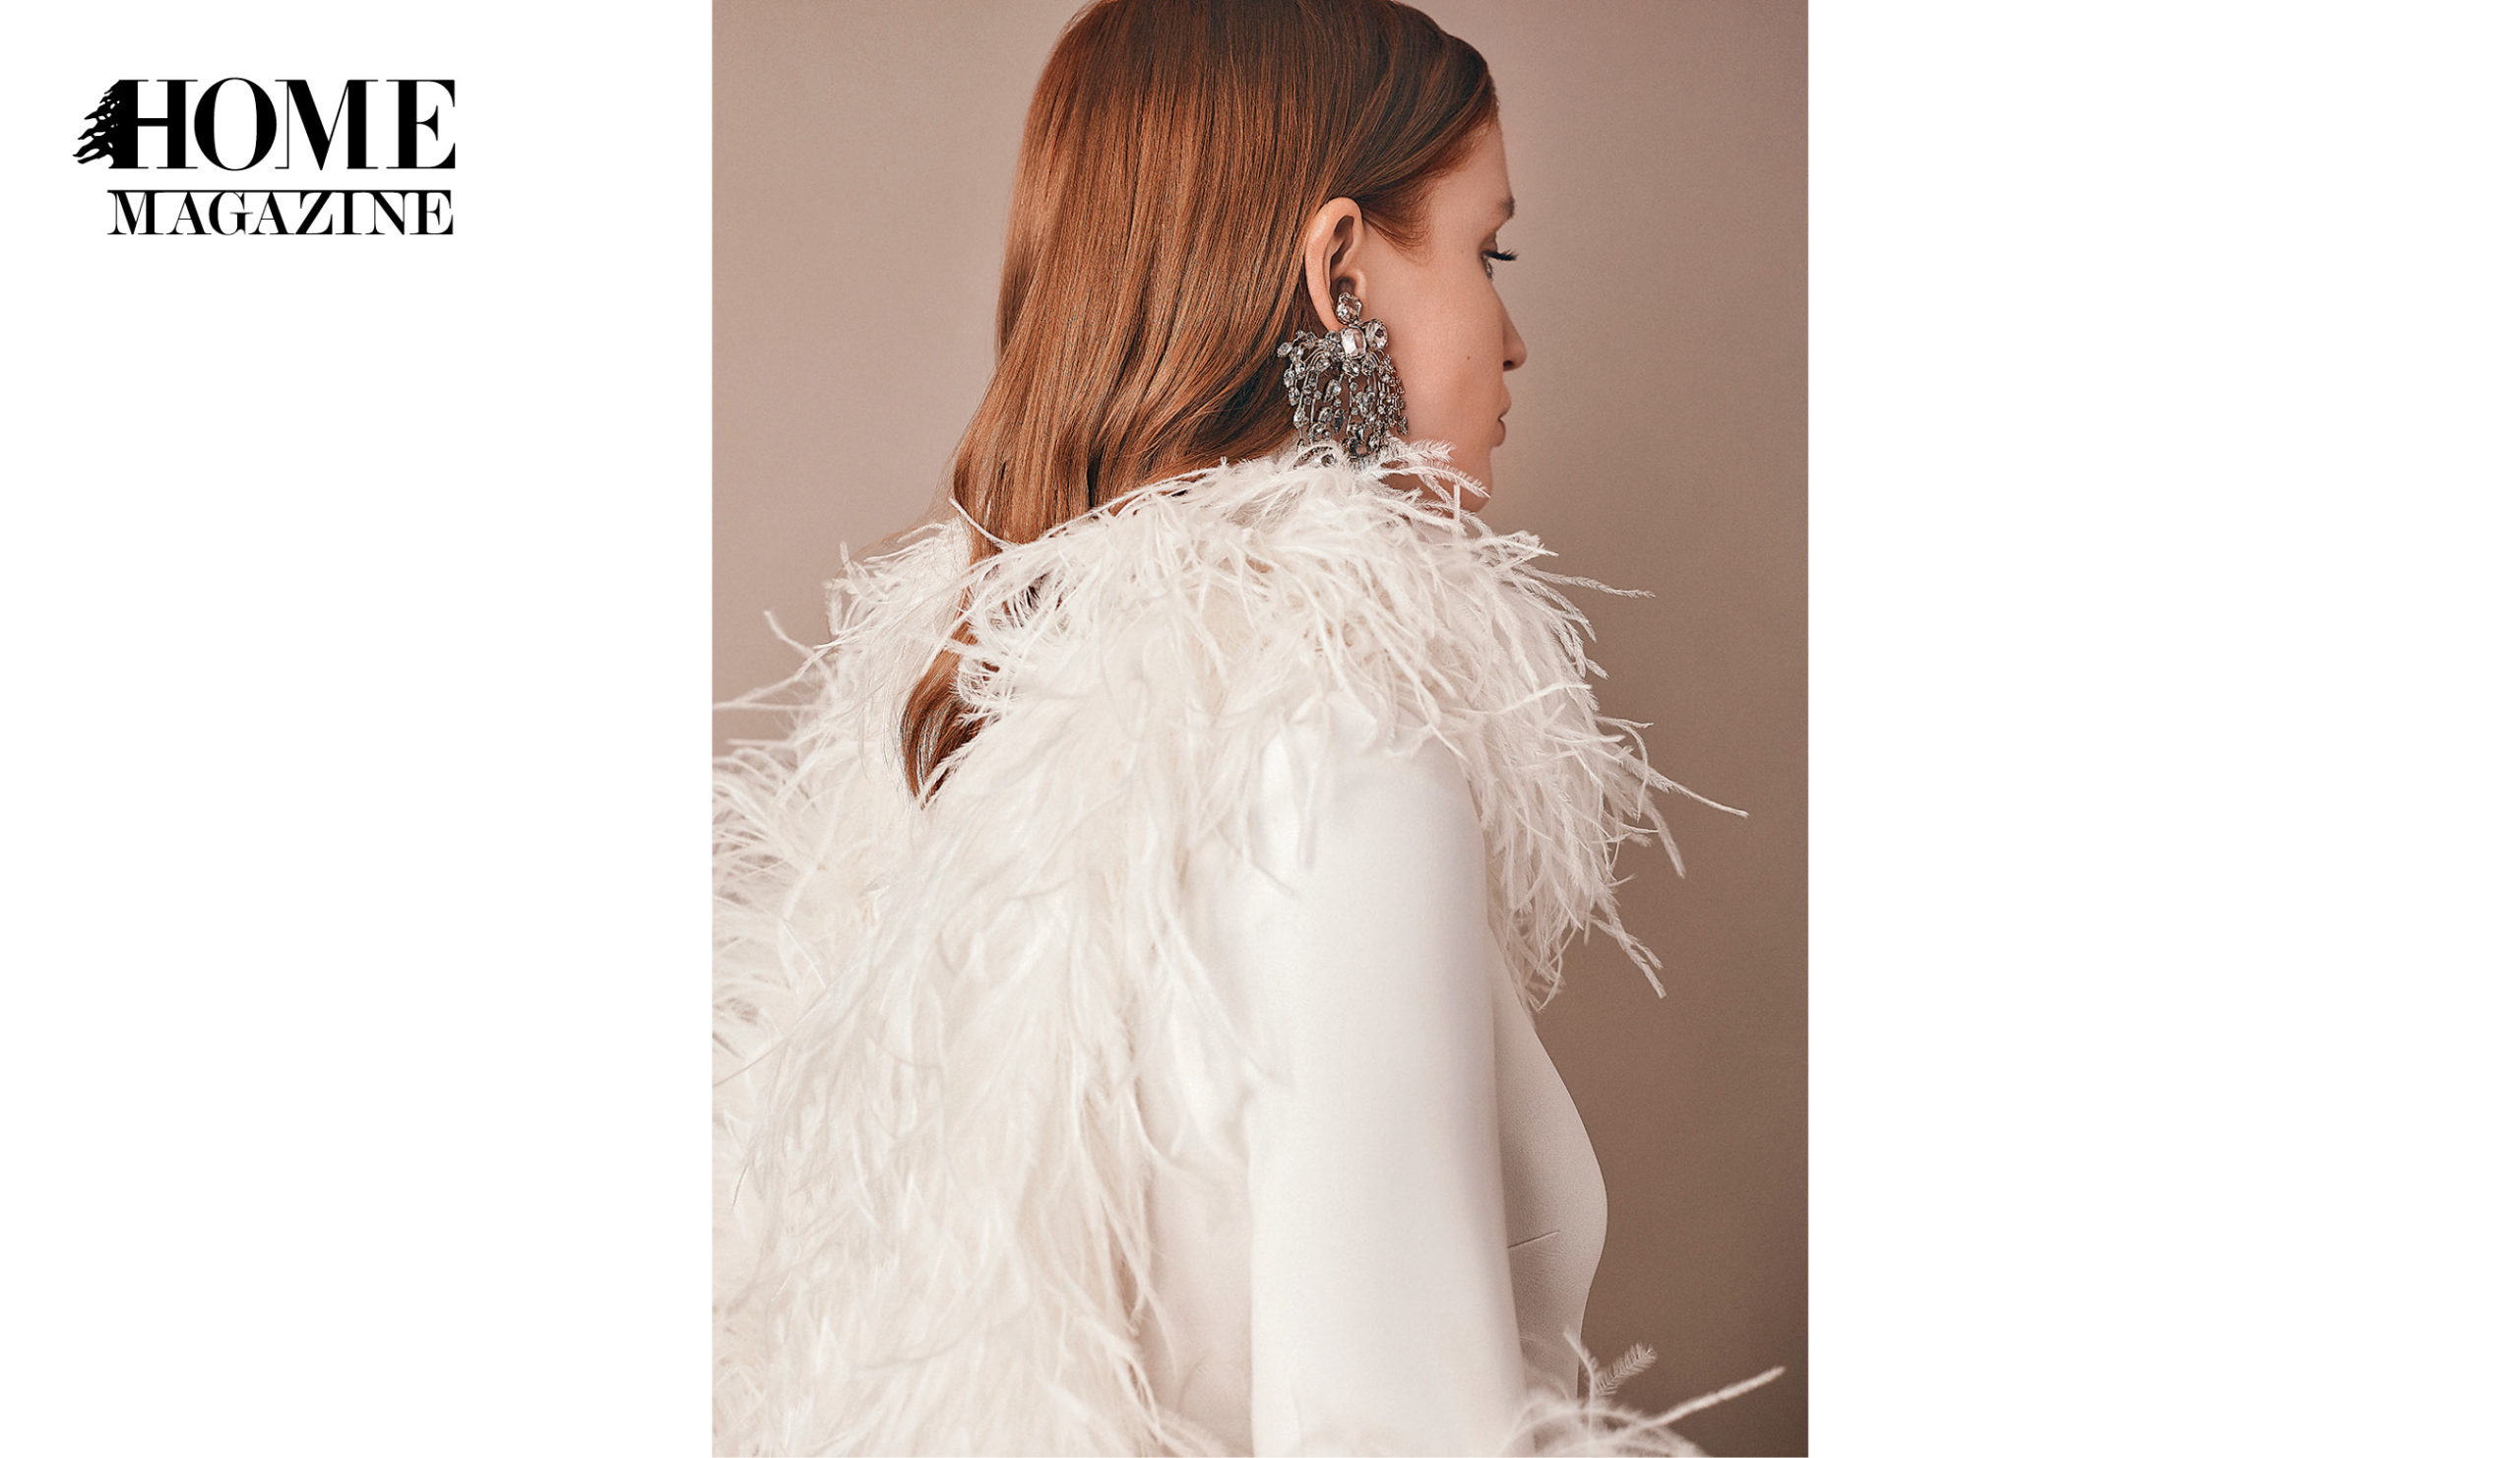 Profile of a model wearing big silver earing and a white blouse with feathers